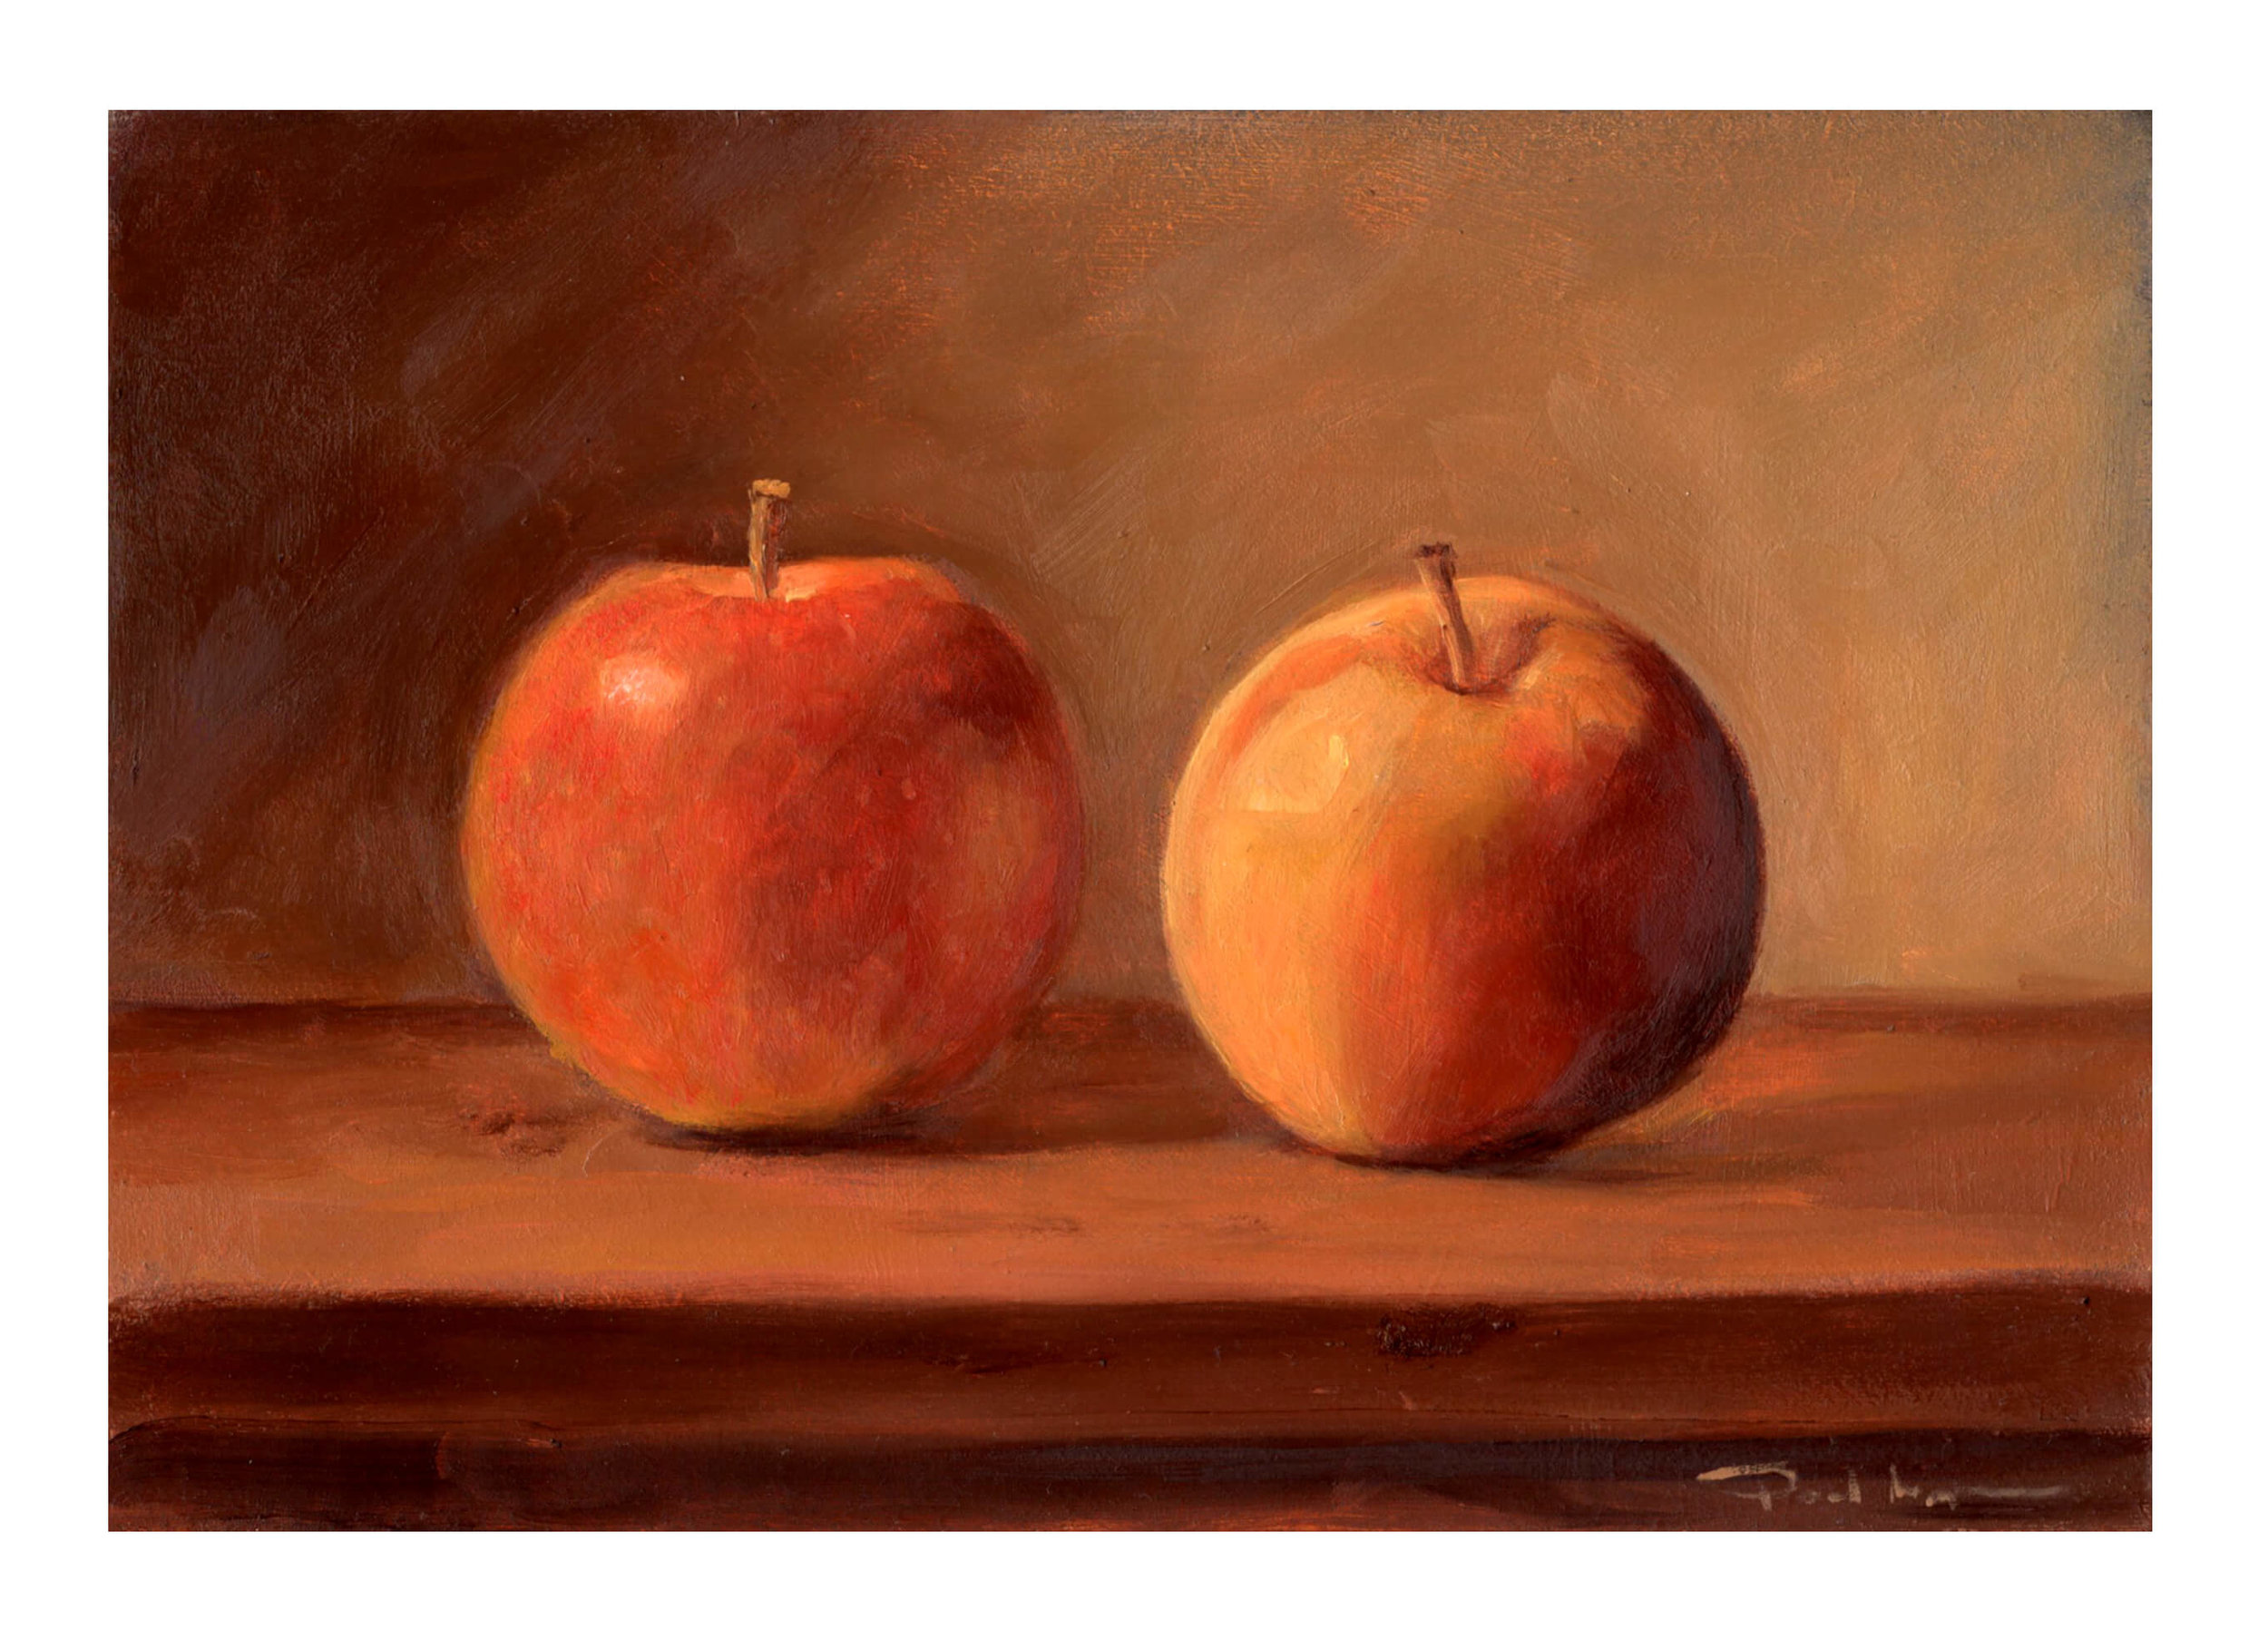 Two Apples - Oil on BoardImage size 148x210mm£250